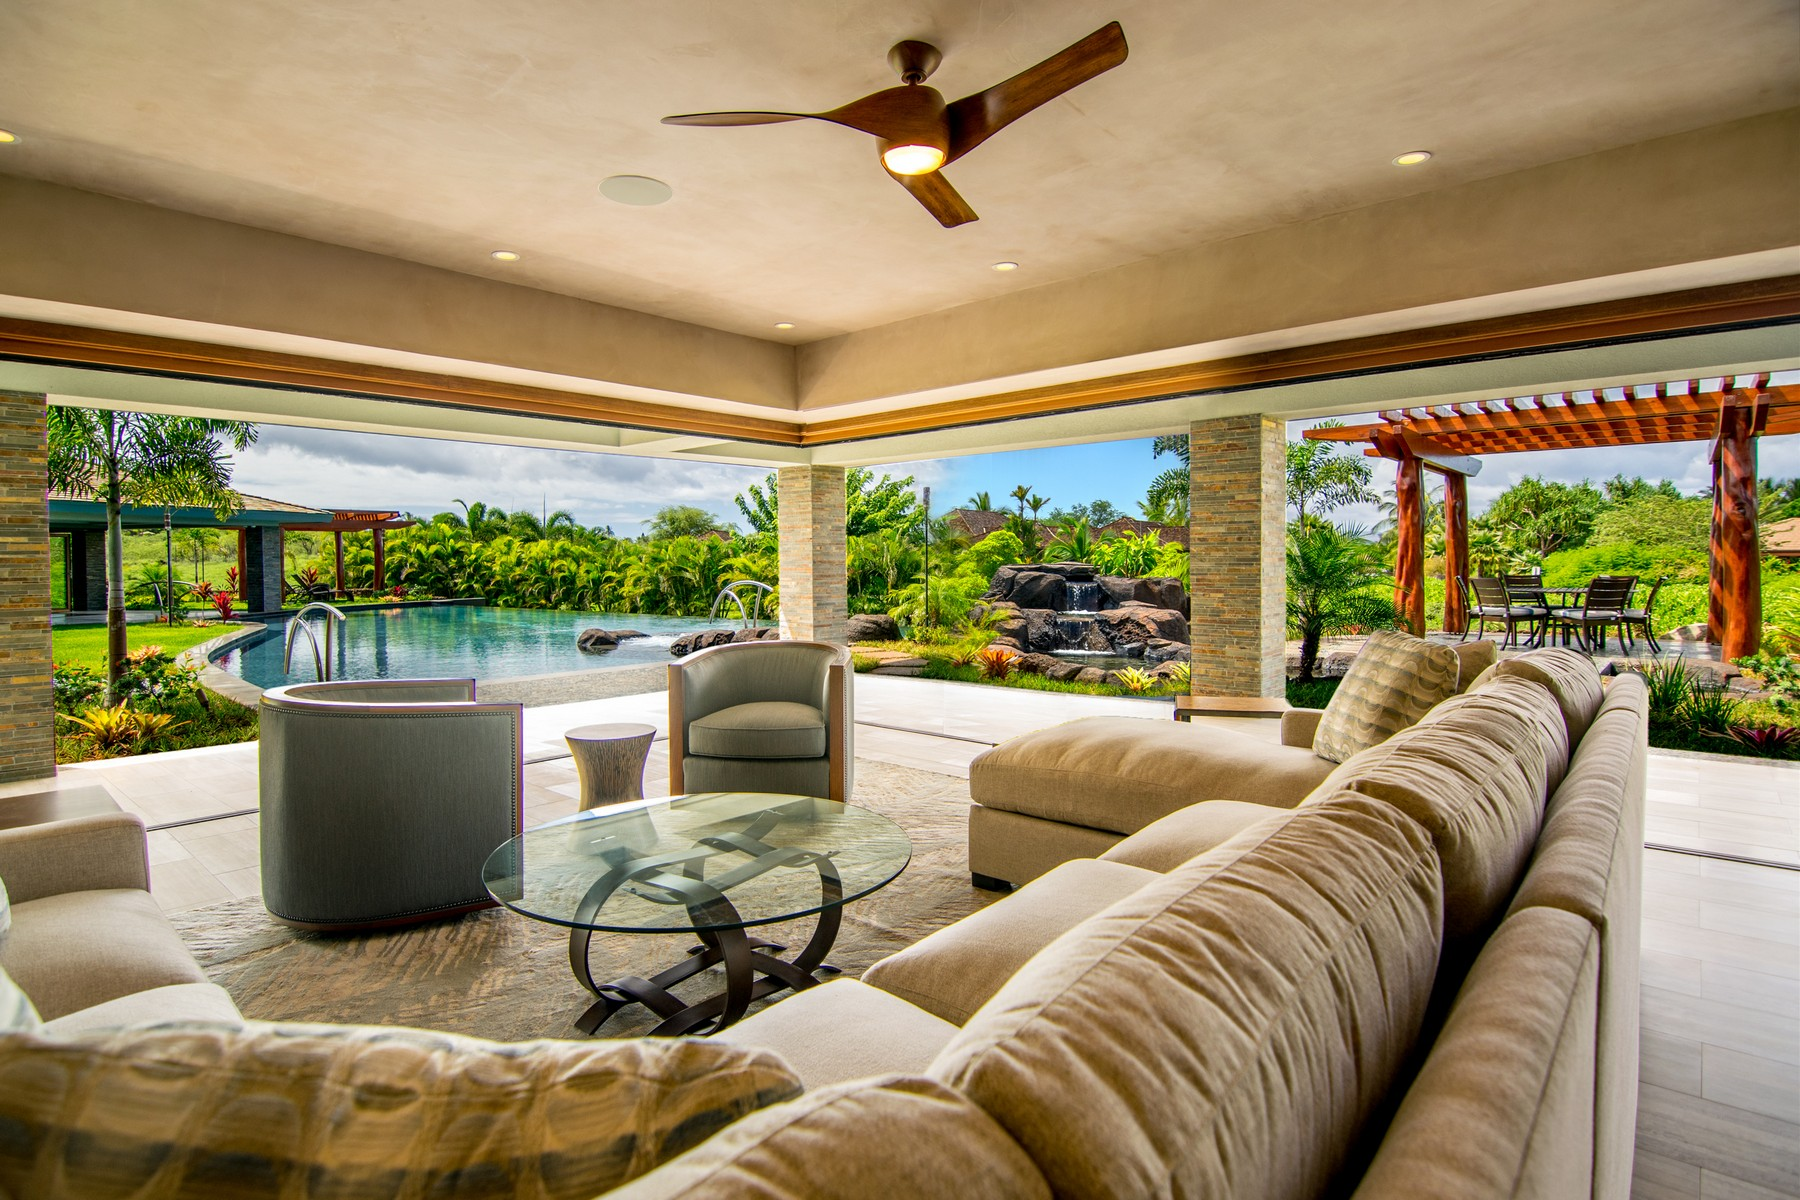 Casa Unifamiliar por un Venta en Perfection 18 Ualei Place Makena, Hawaii, 96753 Estados Unidos